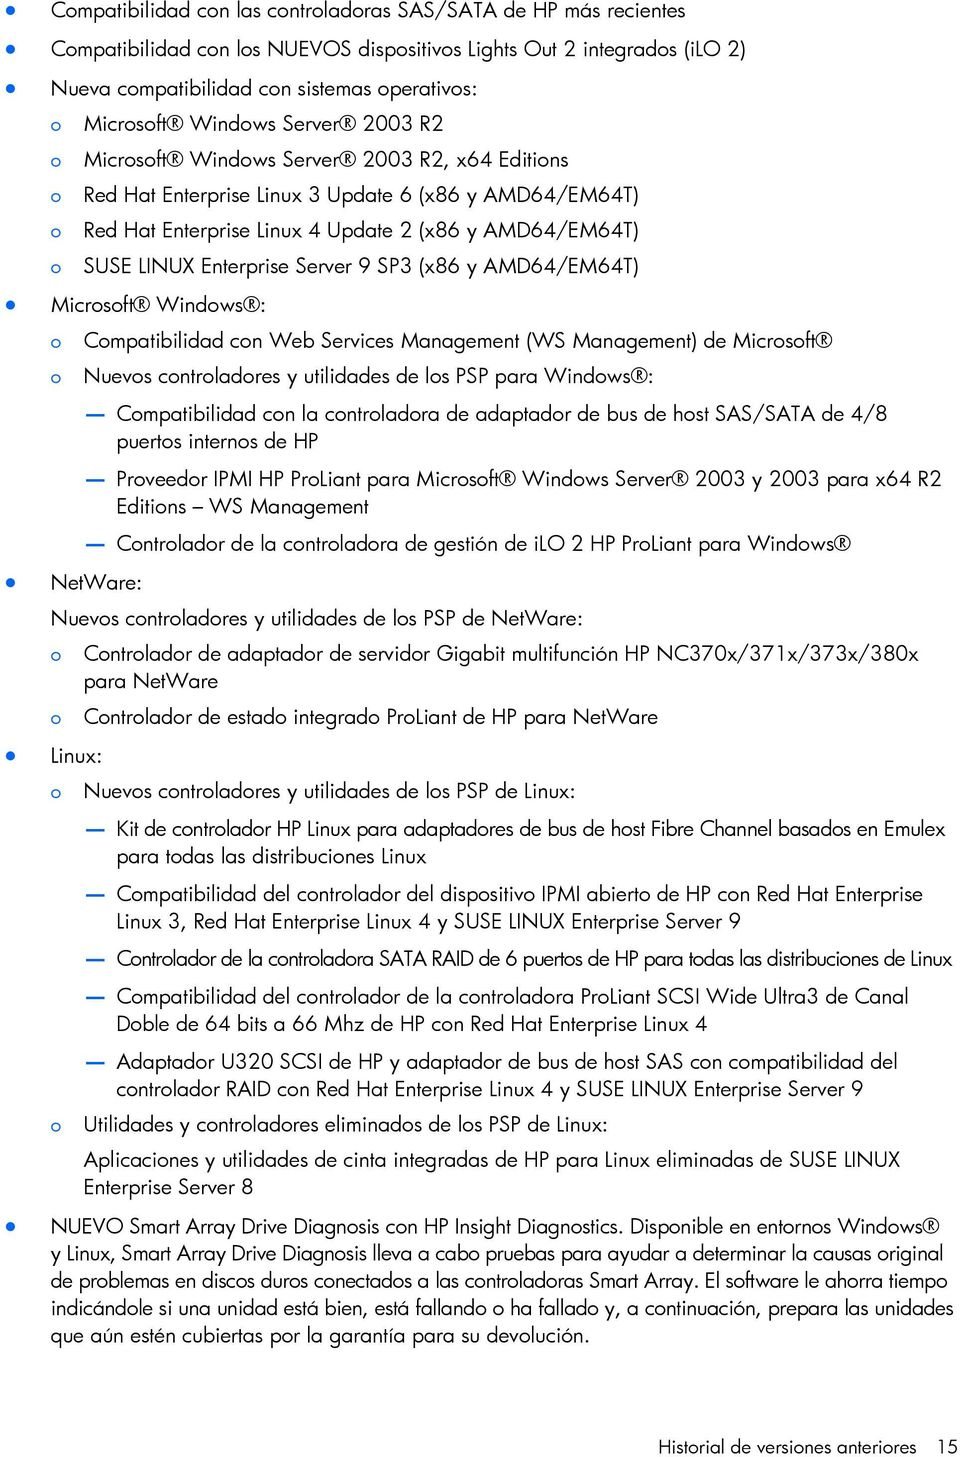 AMD64/EM64T) Micrsft Windws : Cmpatibilidad cn Web Services Management (WS Management) de Micrsft Nuevs cntrladres y utilidades de ls PSP para Windws : Cmpatibilidad cn la cntrladra de adaptadr de